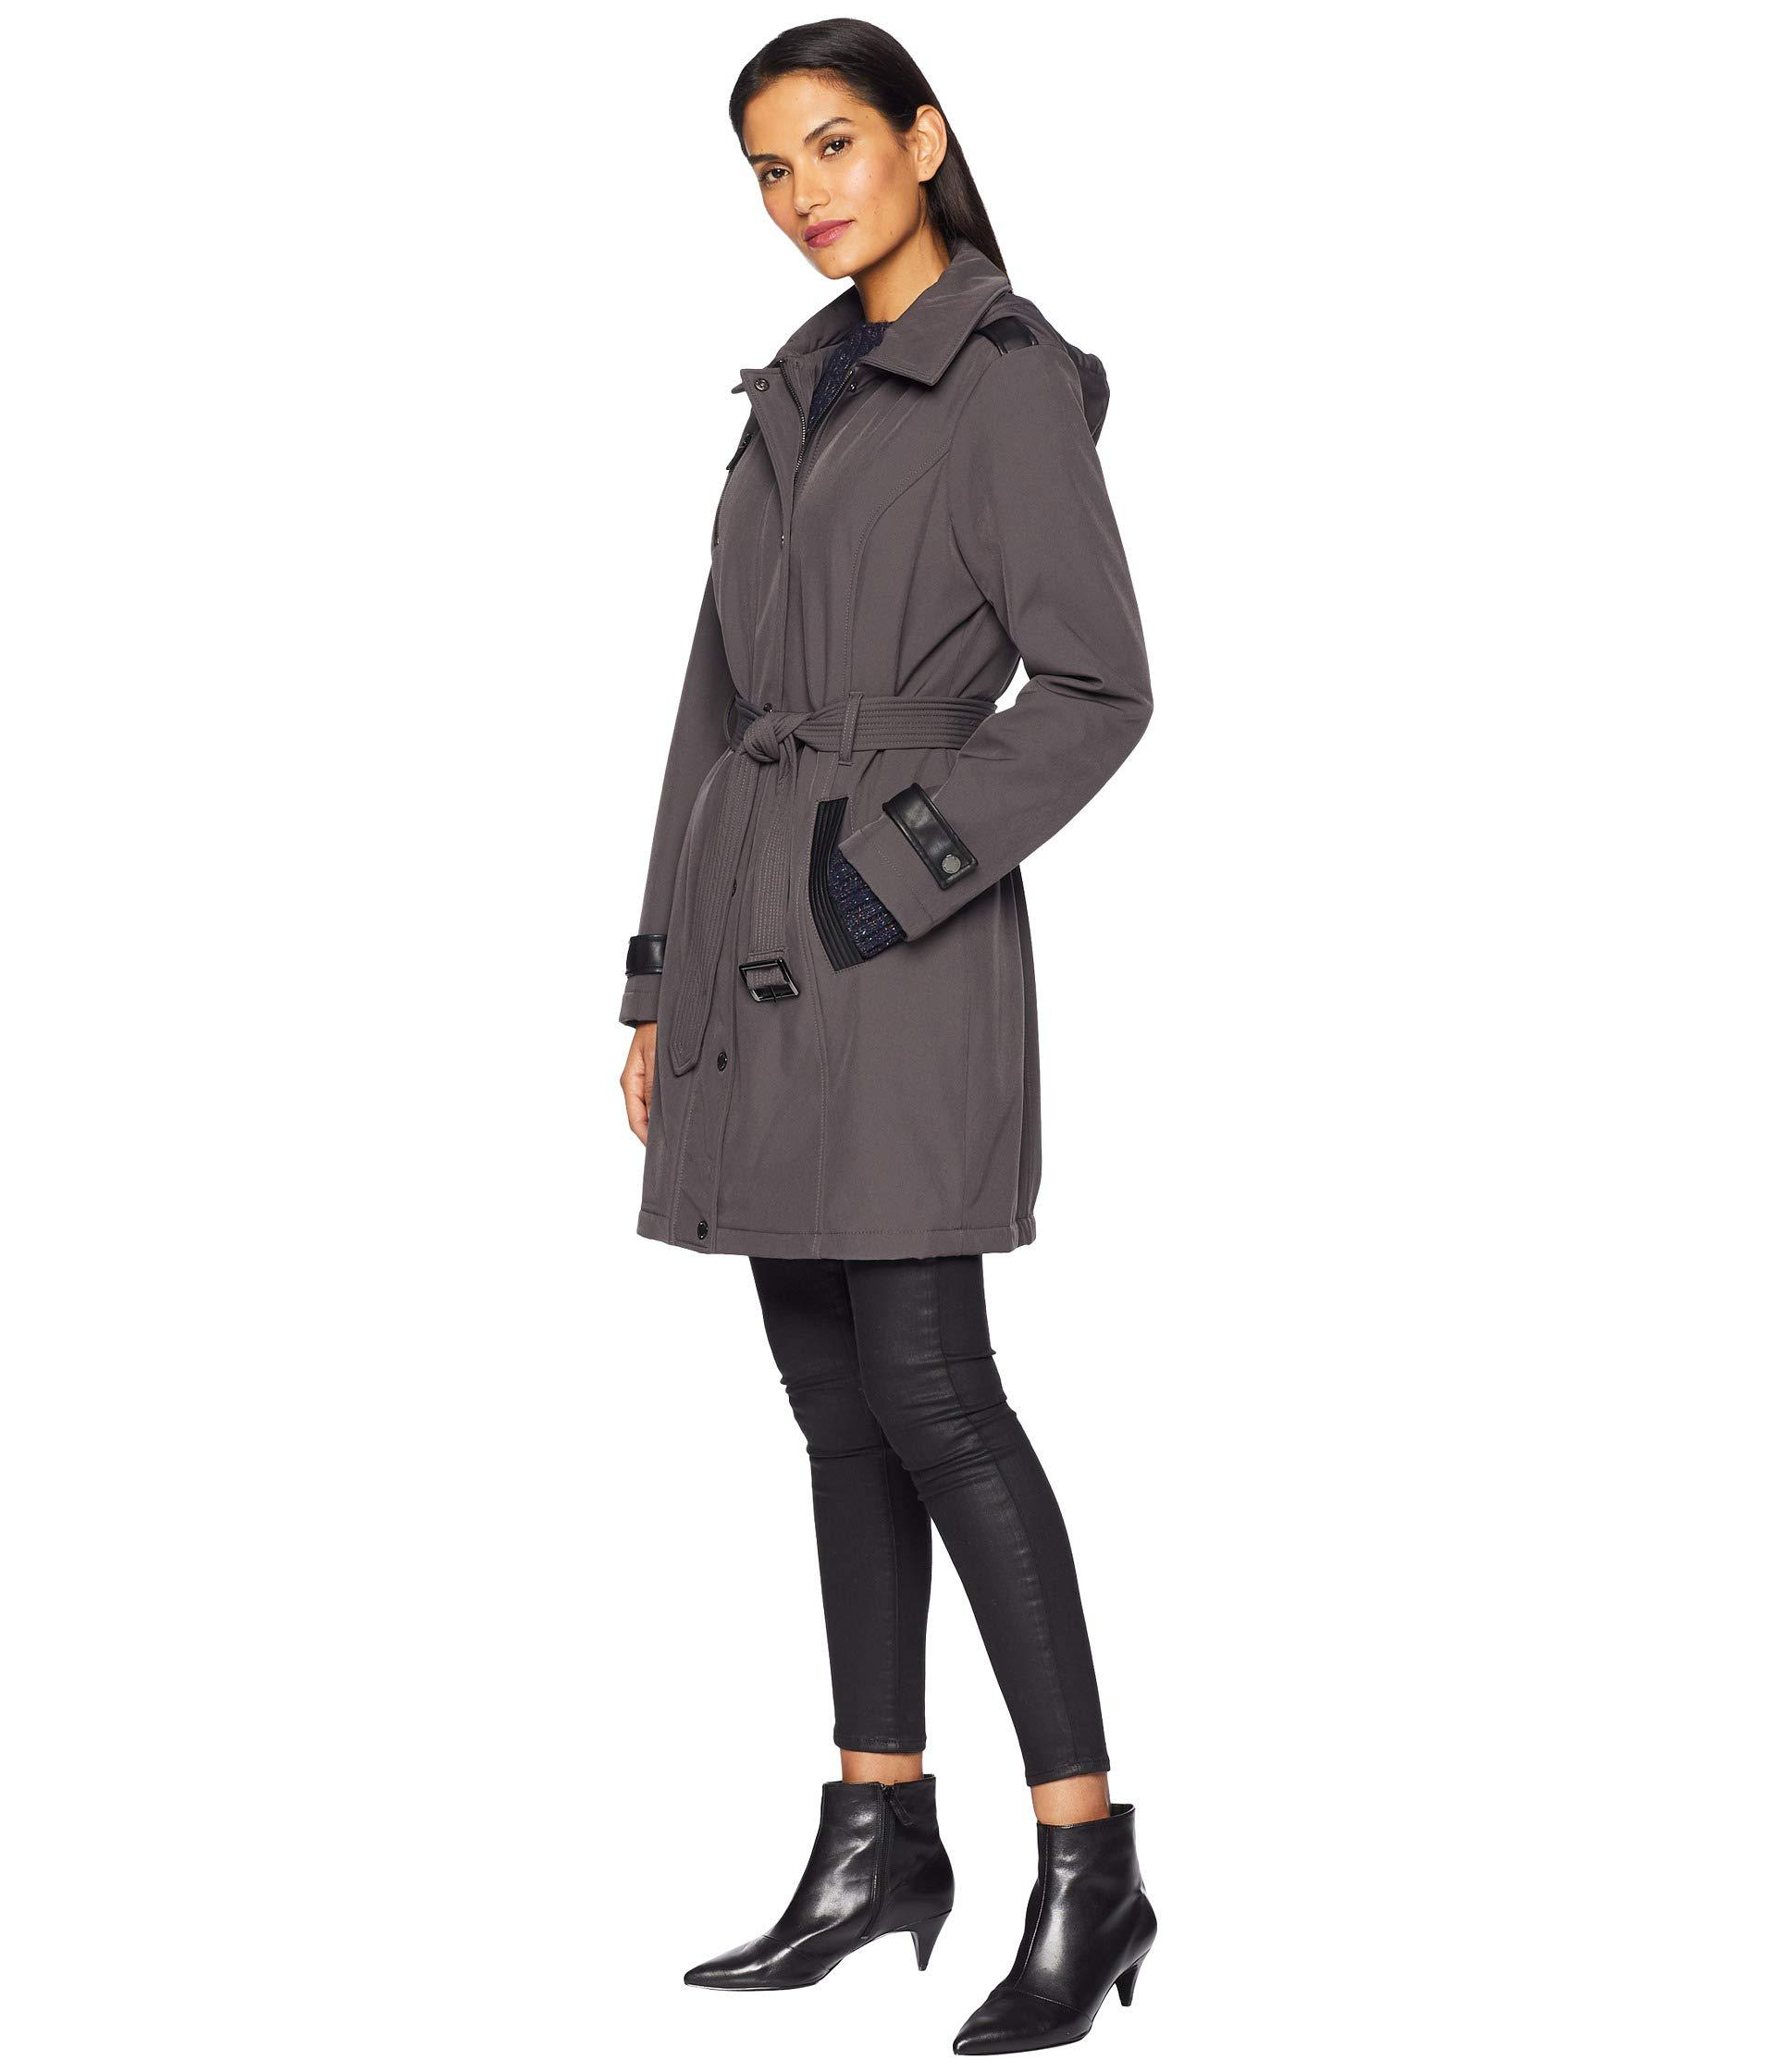 cbc01b2a58d9 Lyst - MICHAEL Michael Kors Snap Front Belted Softshell Coat M523004gz  (charcoal) Women s Coat in Gray